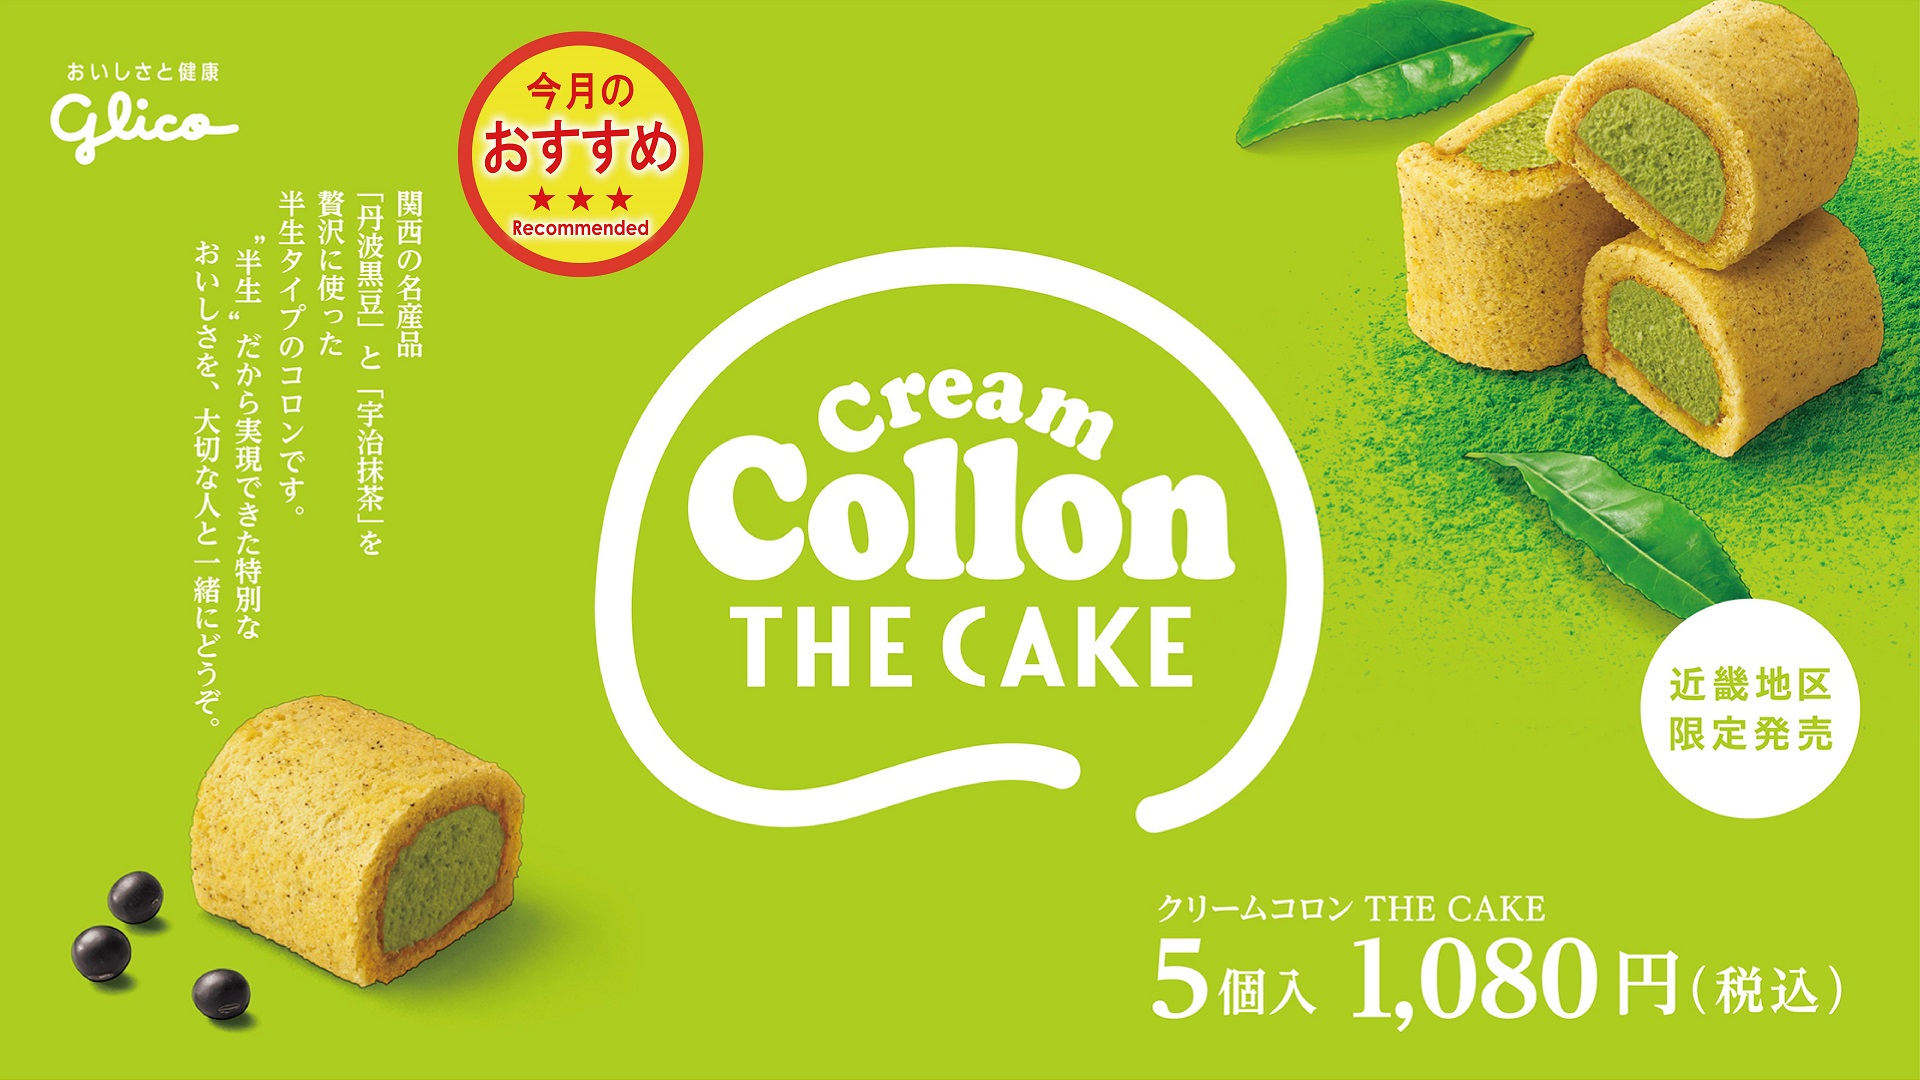 Cream Collon THE CAKE